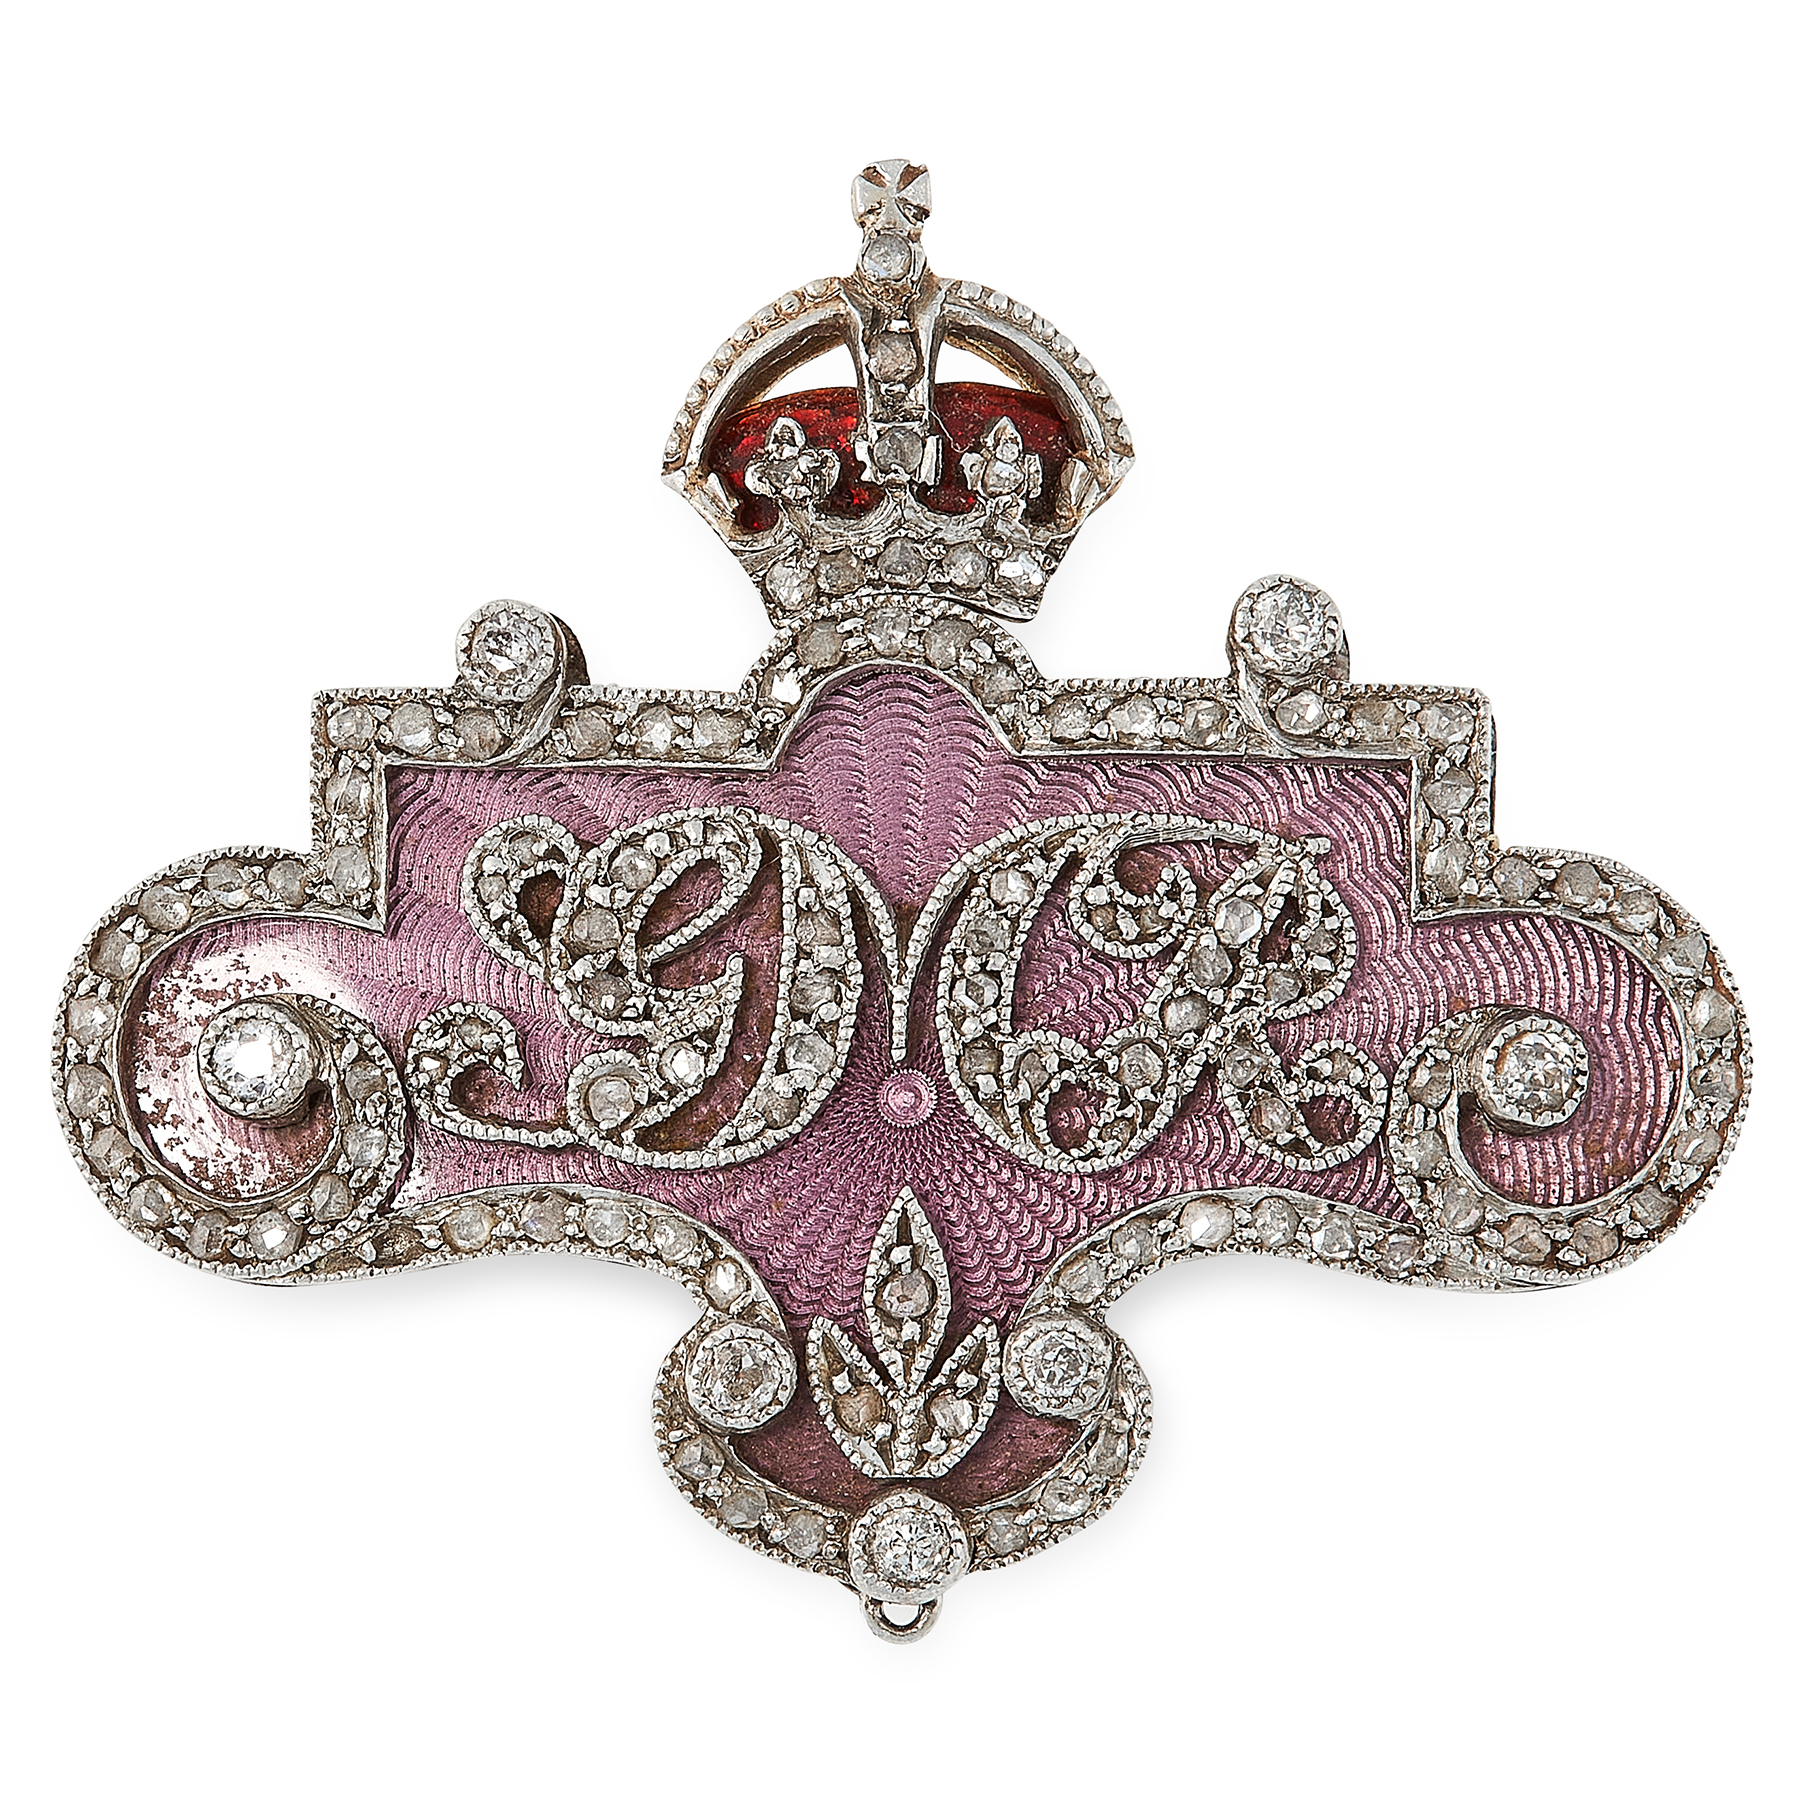 AN ANTIQUE DIAMOND AND ENAMEL ROYAL PRESENTATION BROOCH, CIFRCA 1915 in yellow gold and silver,